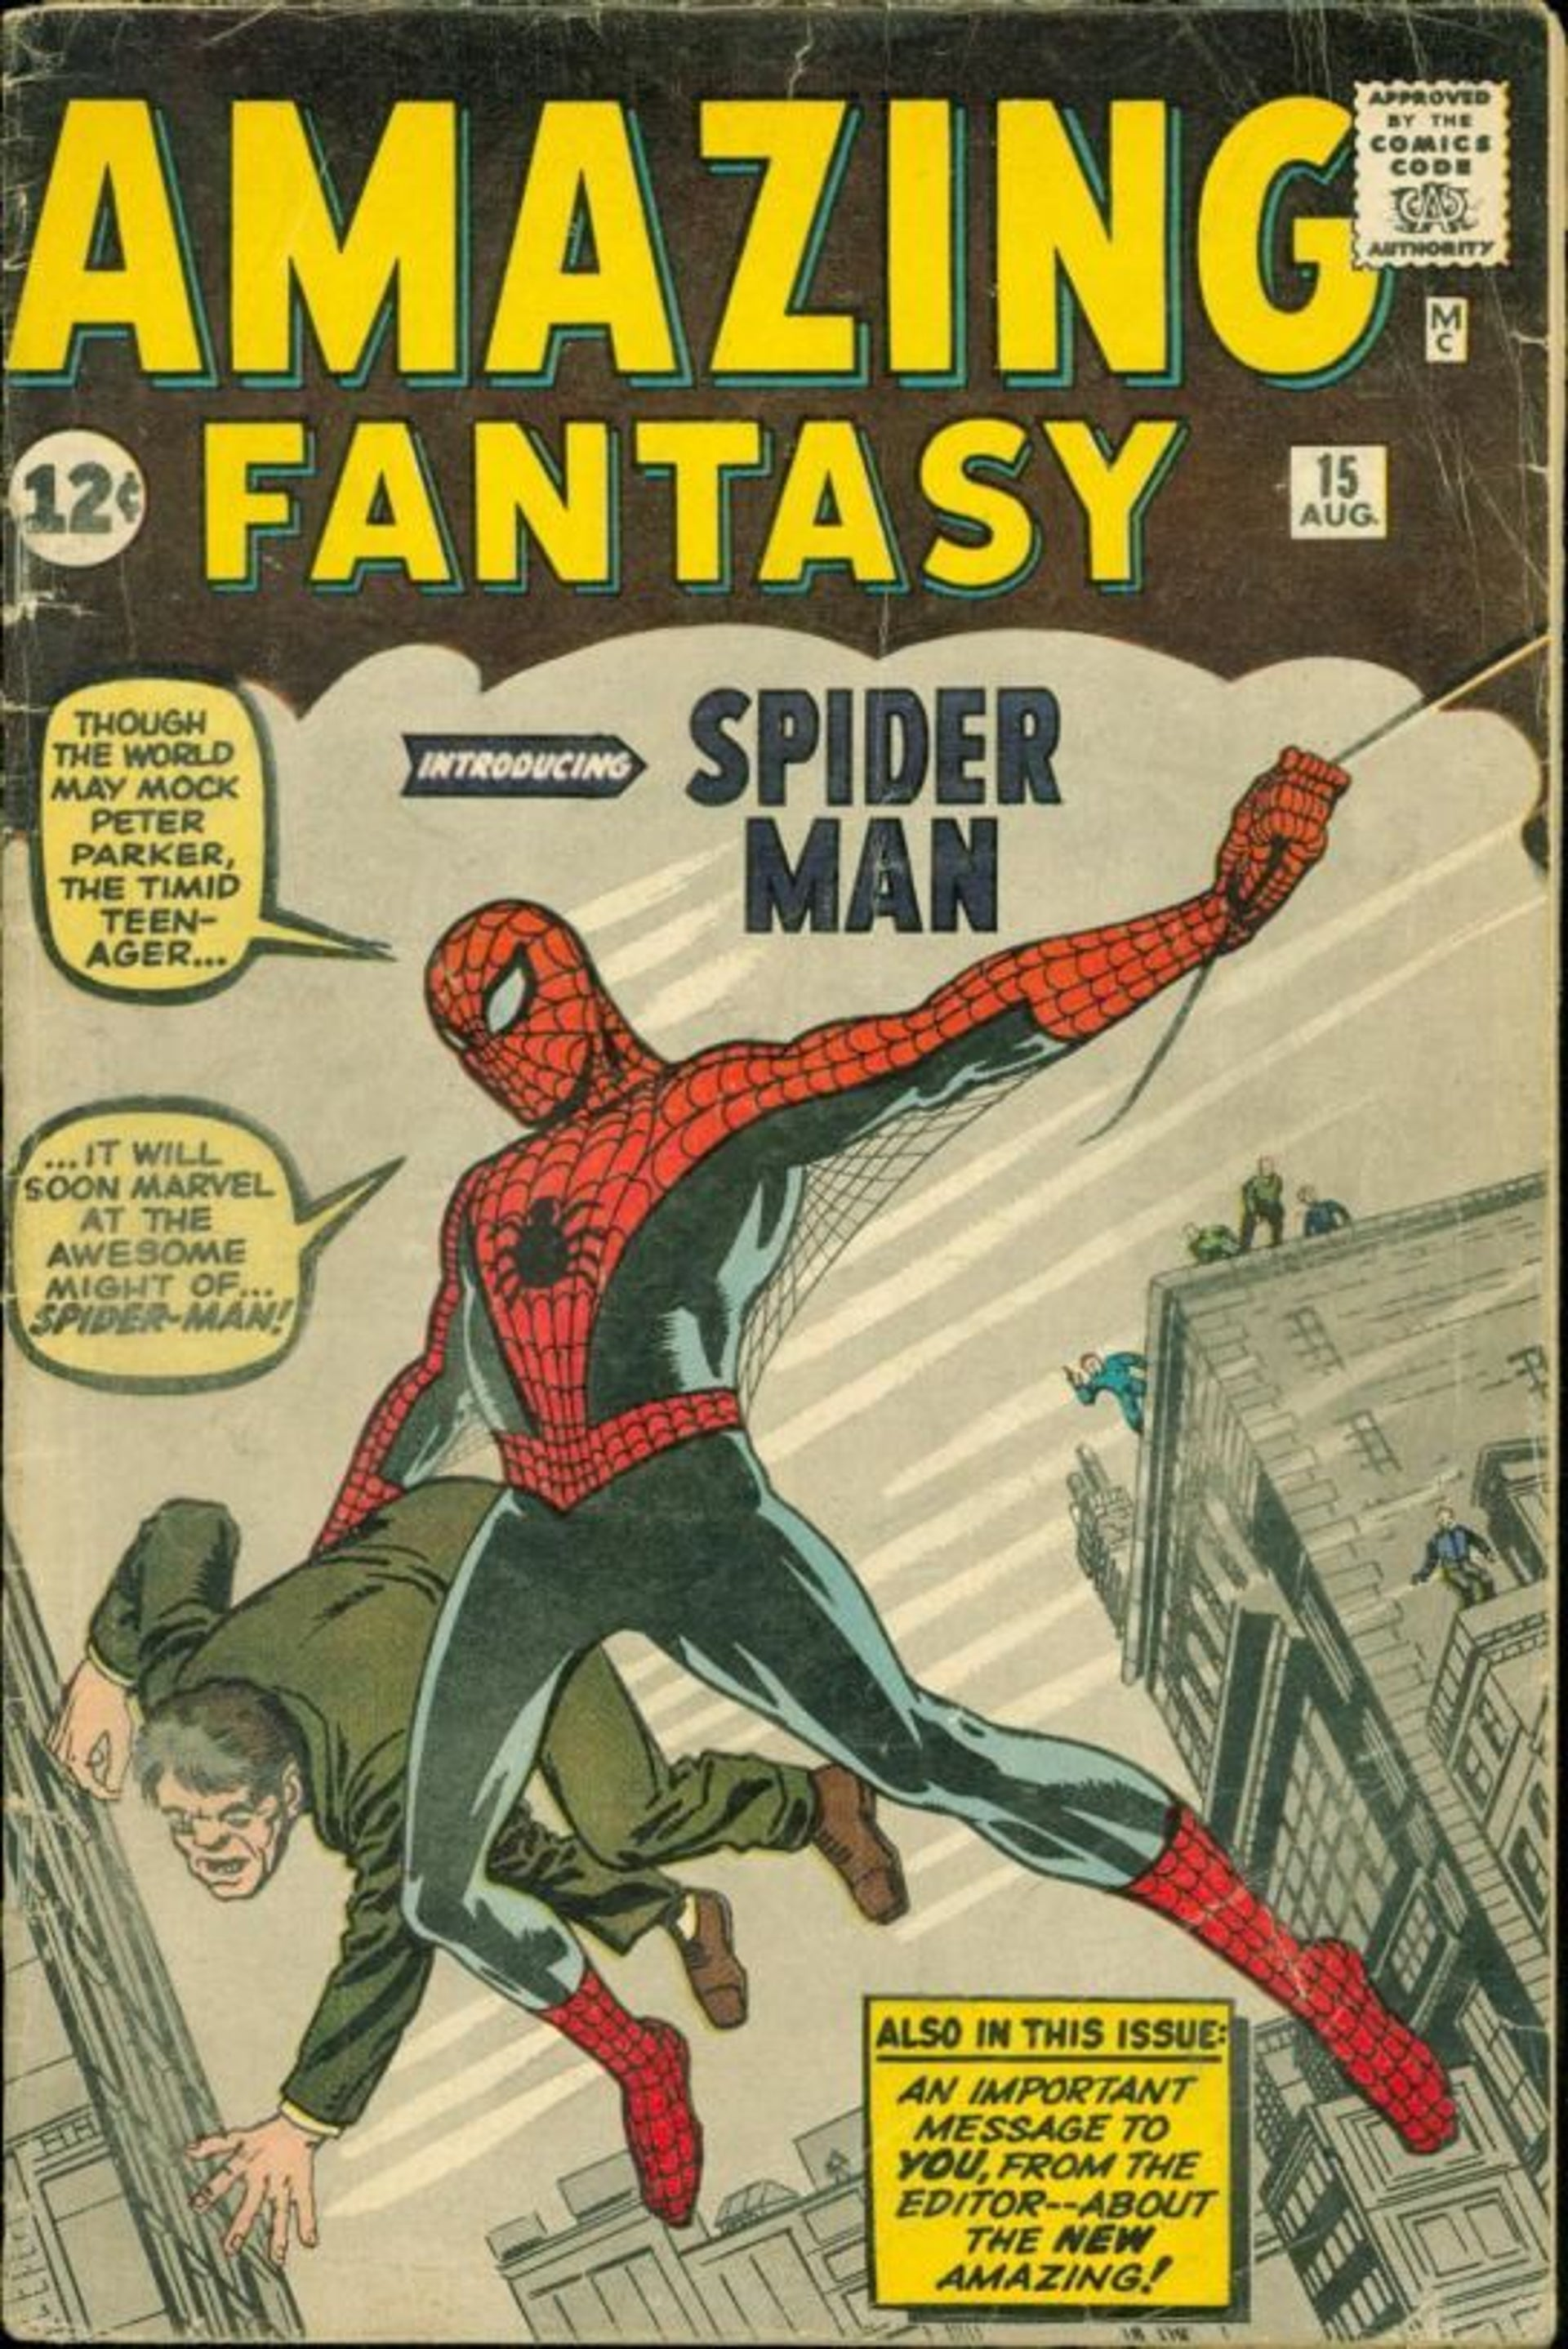 Spiderman circa 1962, by Jack Kirby and Stan Lee (Stanley Martin Lieber)